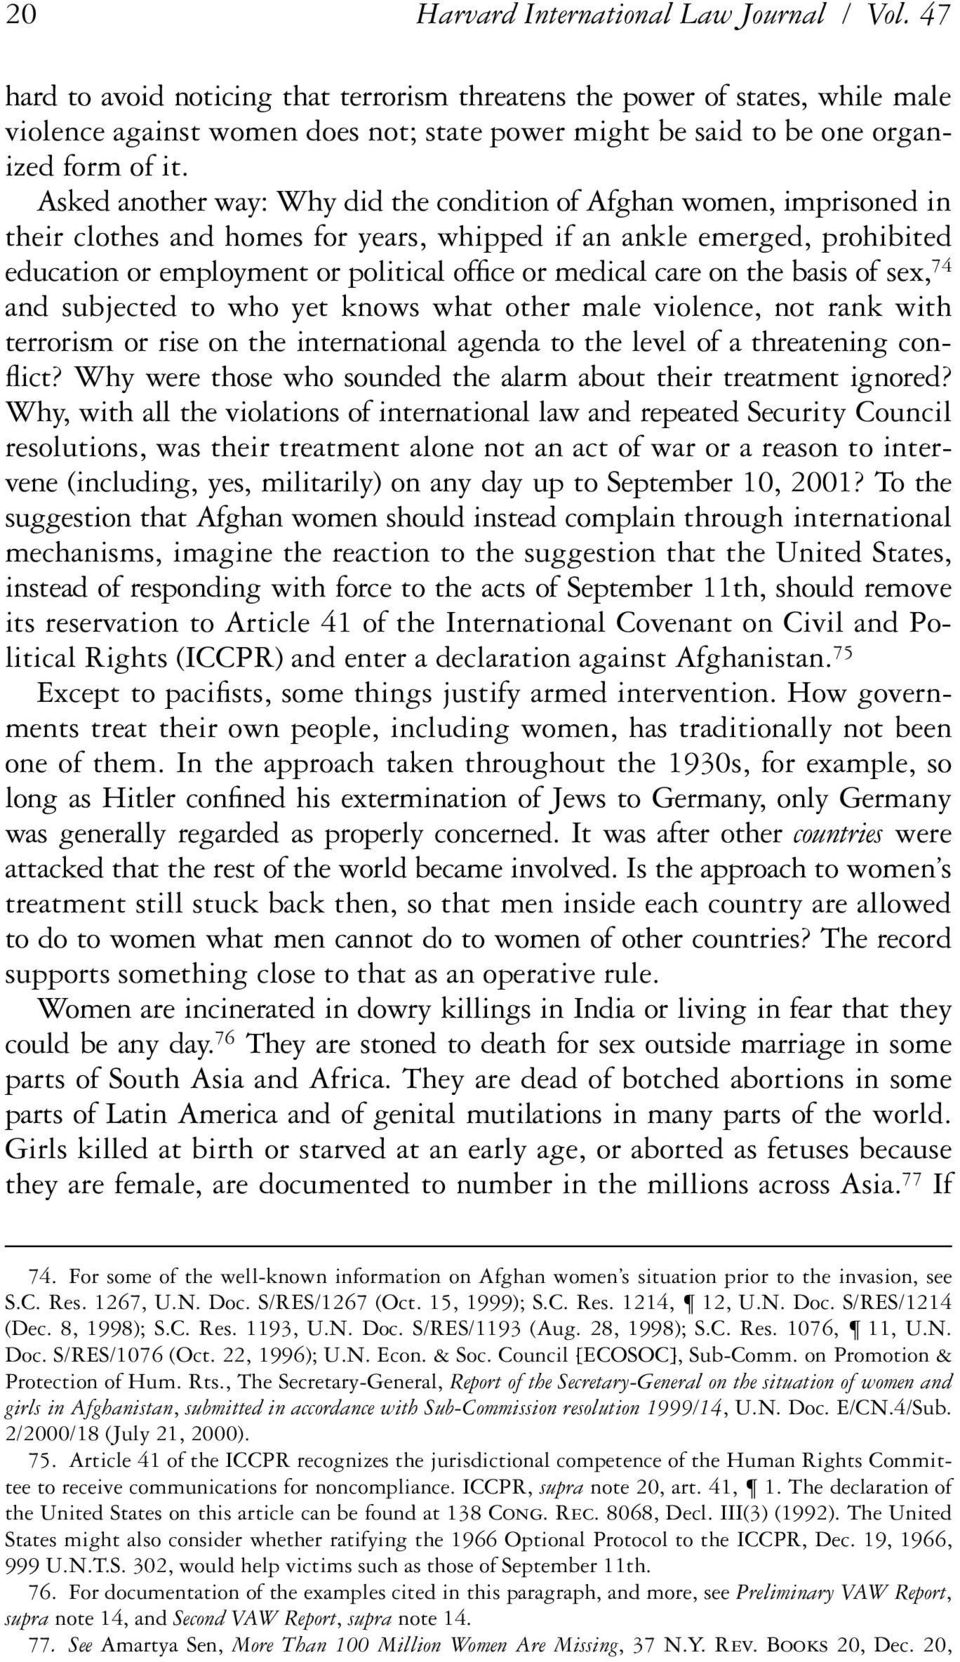 Asked another way: Why did the condition of Afghan women, imprisoned in their clothes and homes for years, whipped if an ankle emerged, prohibited education or employment or political ofªce or